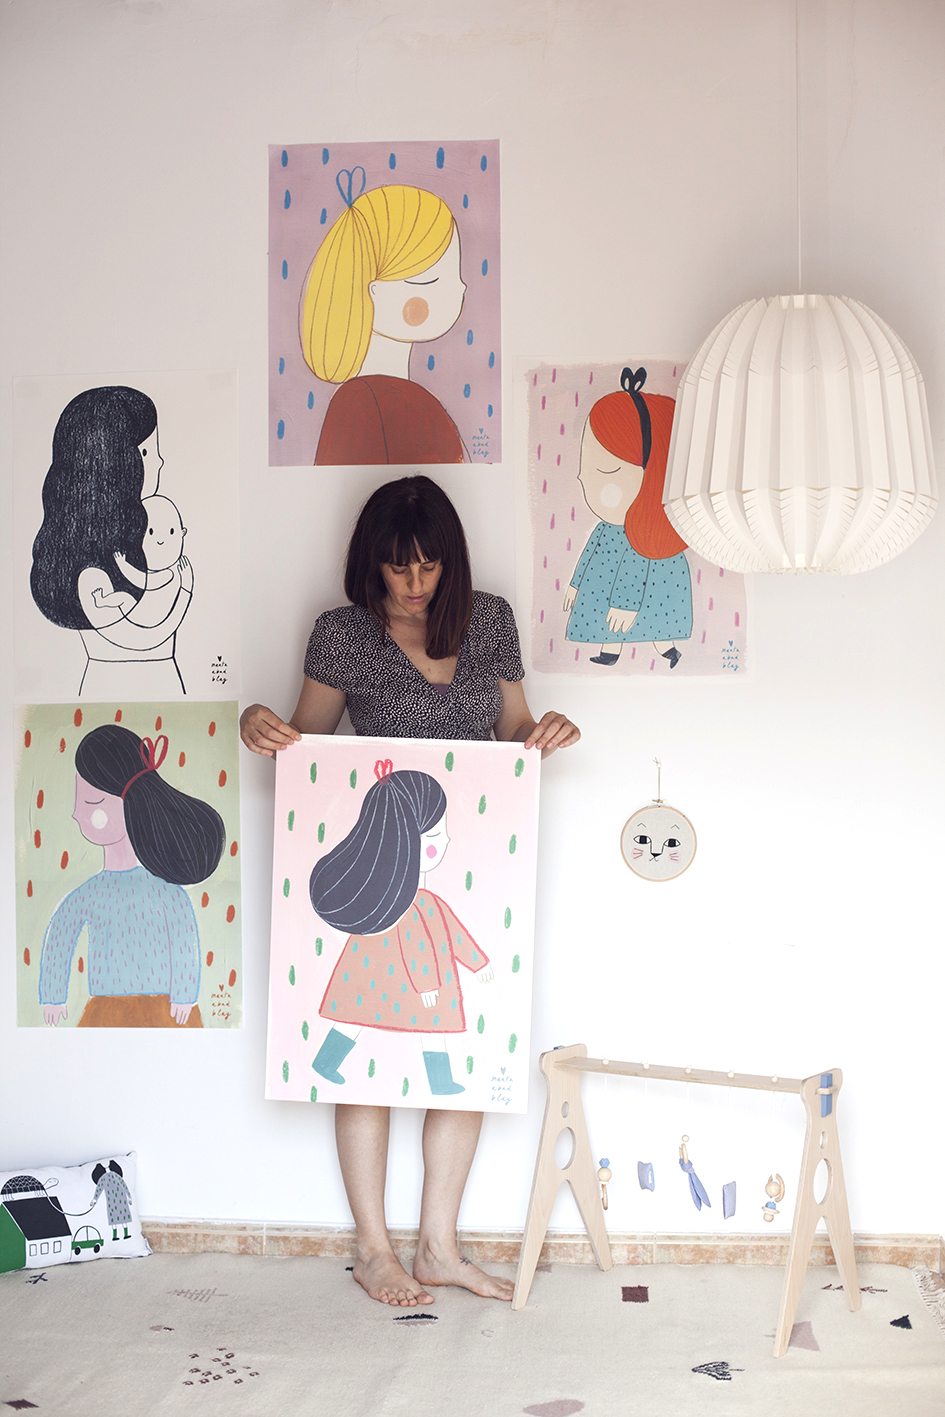 Marta Abad Blay and her work